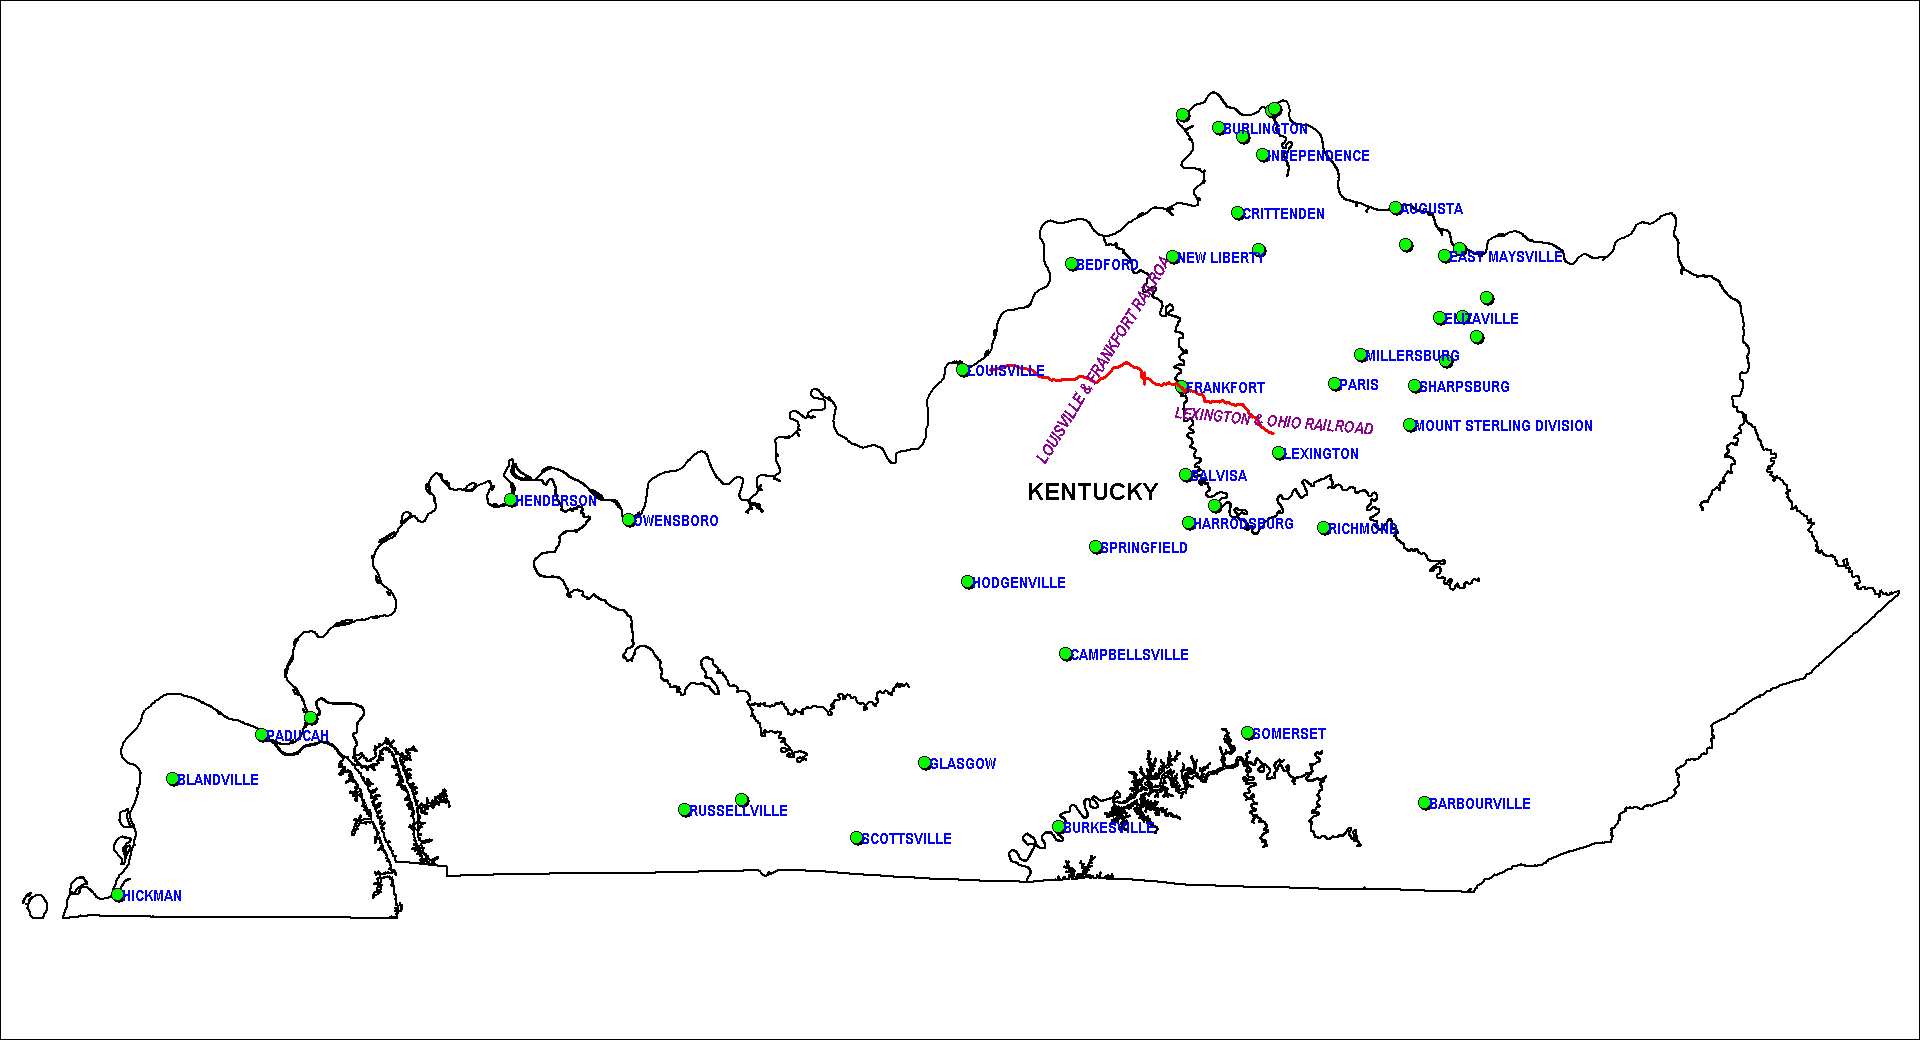 Kentucky Railroad Map as of 1850